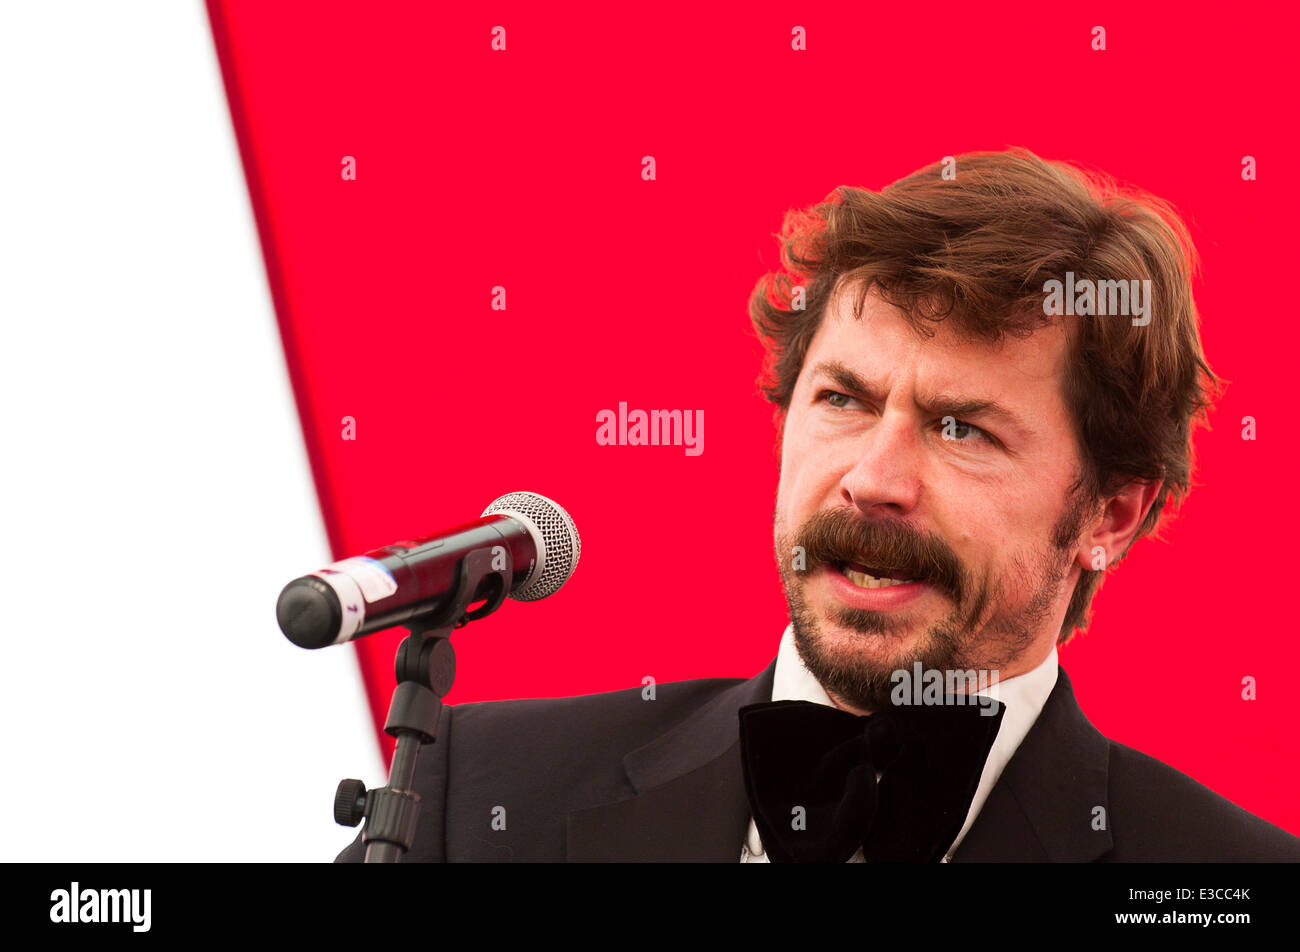 Llandeilo, Carmarthenshire, Wales, UK. 22nd June, 2014. Comedian Mike Wozniak gives a great performance at the Dinefwr - Stock Image